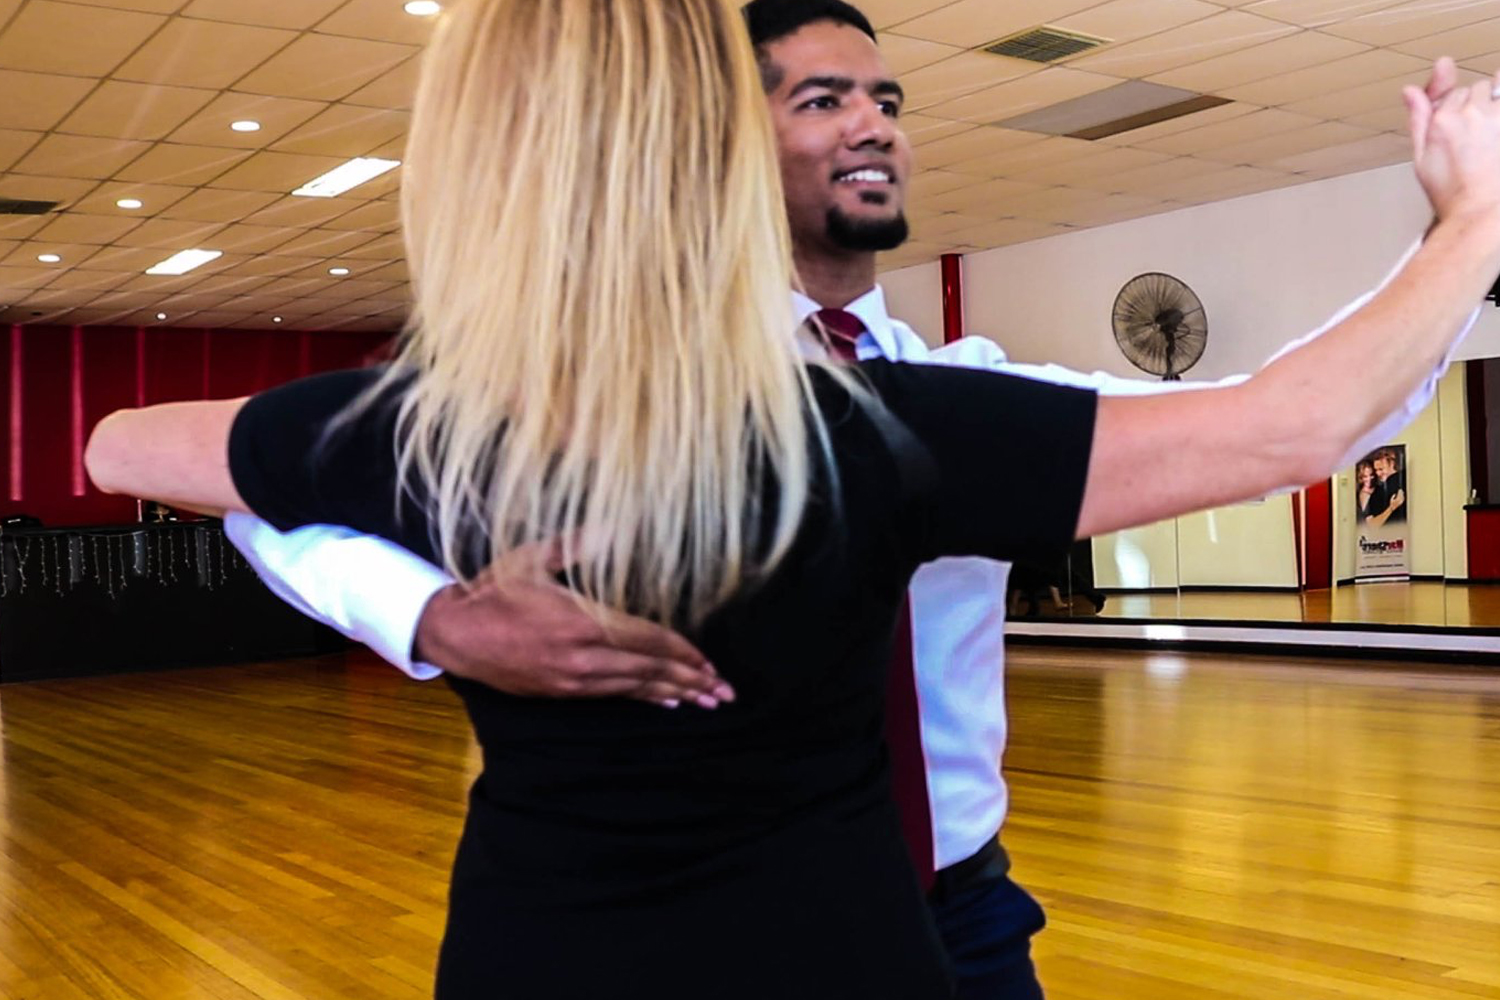 Learn to dance ballroom & new vogue styles